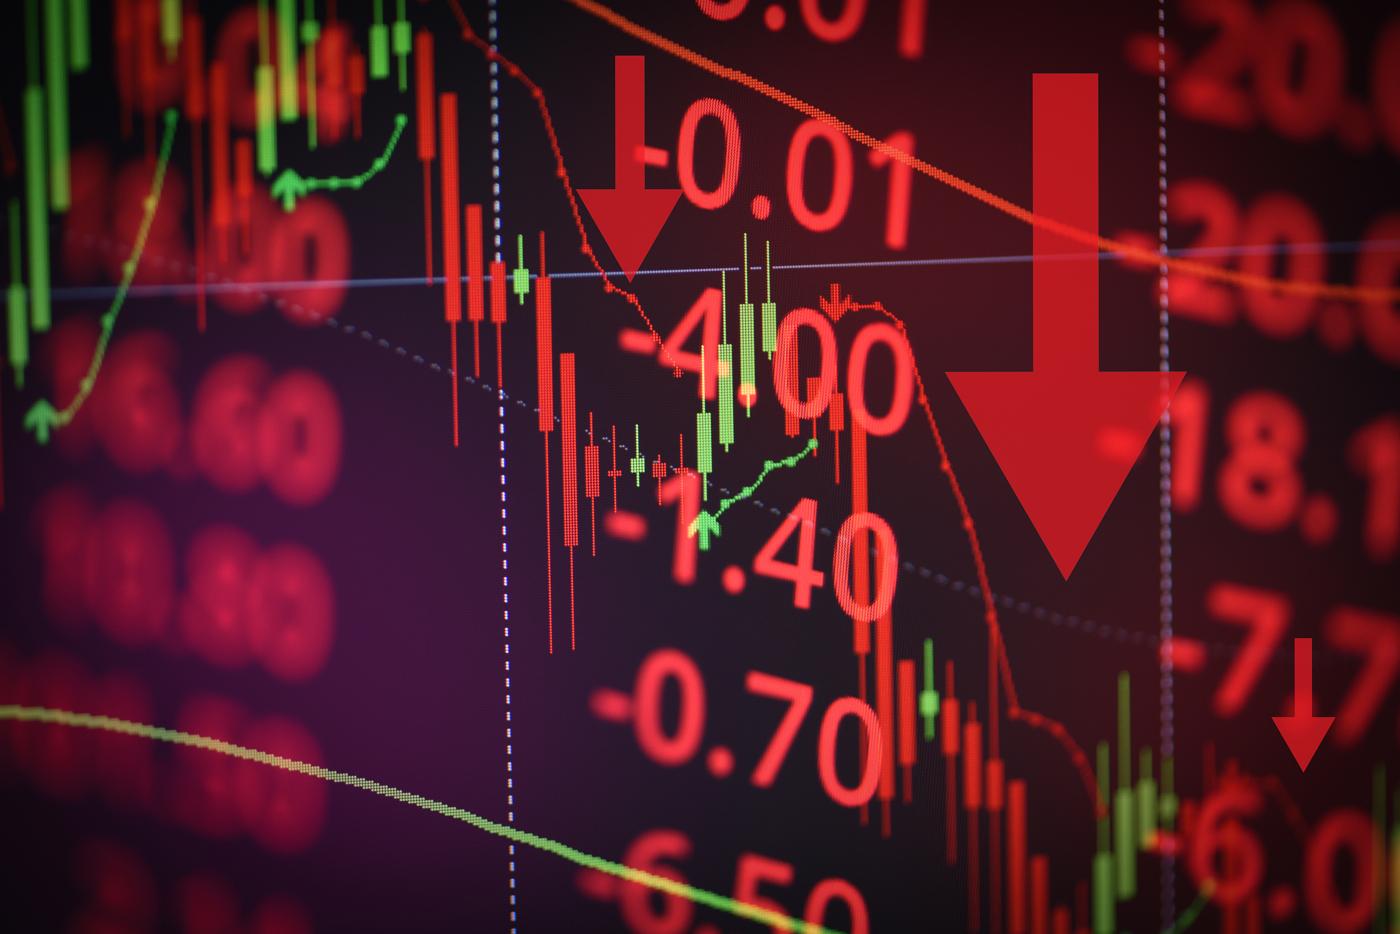 red stock price chart, stock price dropping